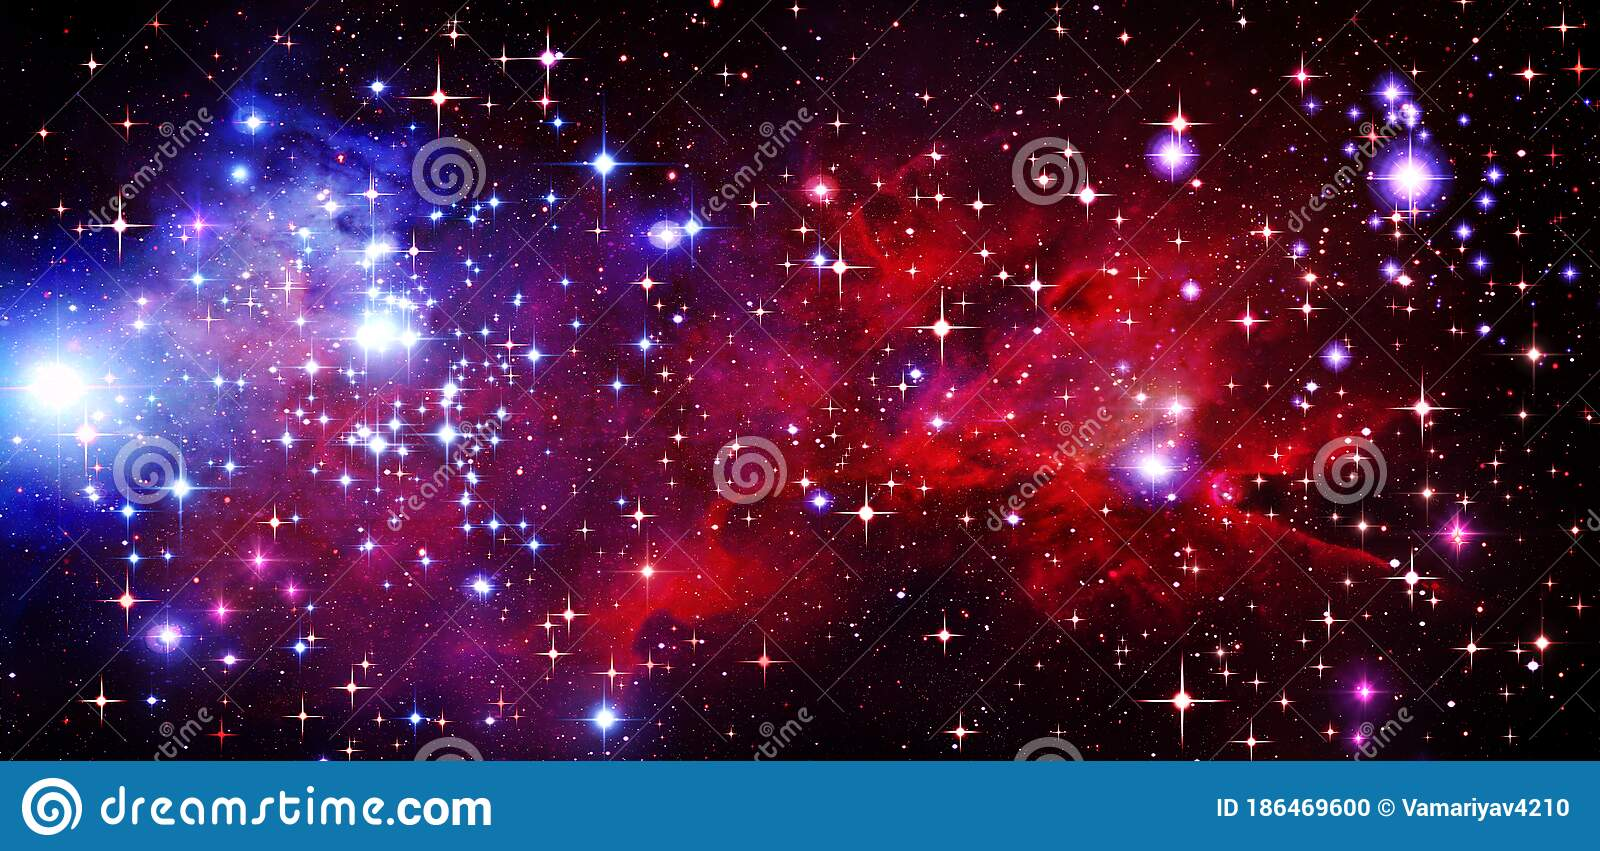 Outer Space Galaxy Universe Astronomy Science Fiction Space Cluster Of Stars Radiance Bright Stars Red Blue Black Stock Illustration Illustration Of Radiance Universe 186469600